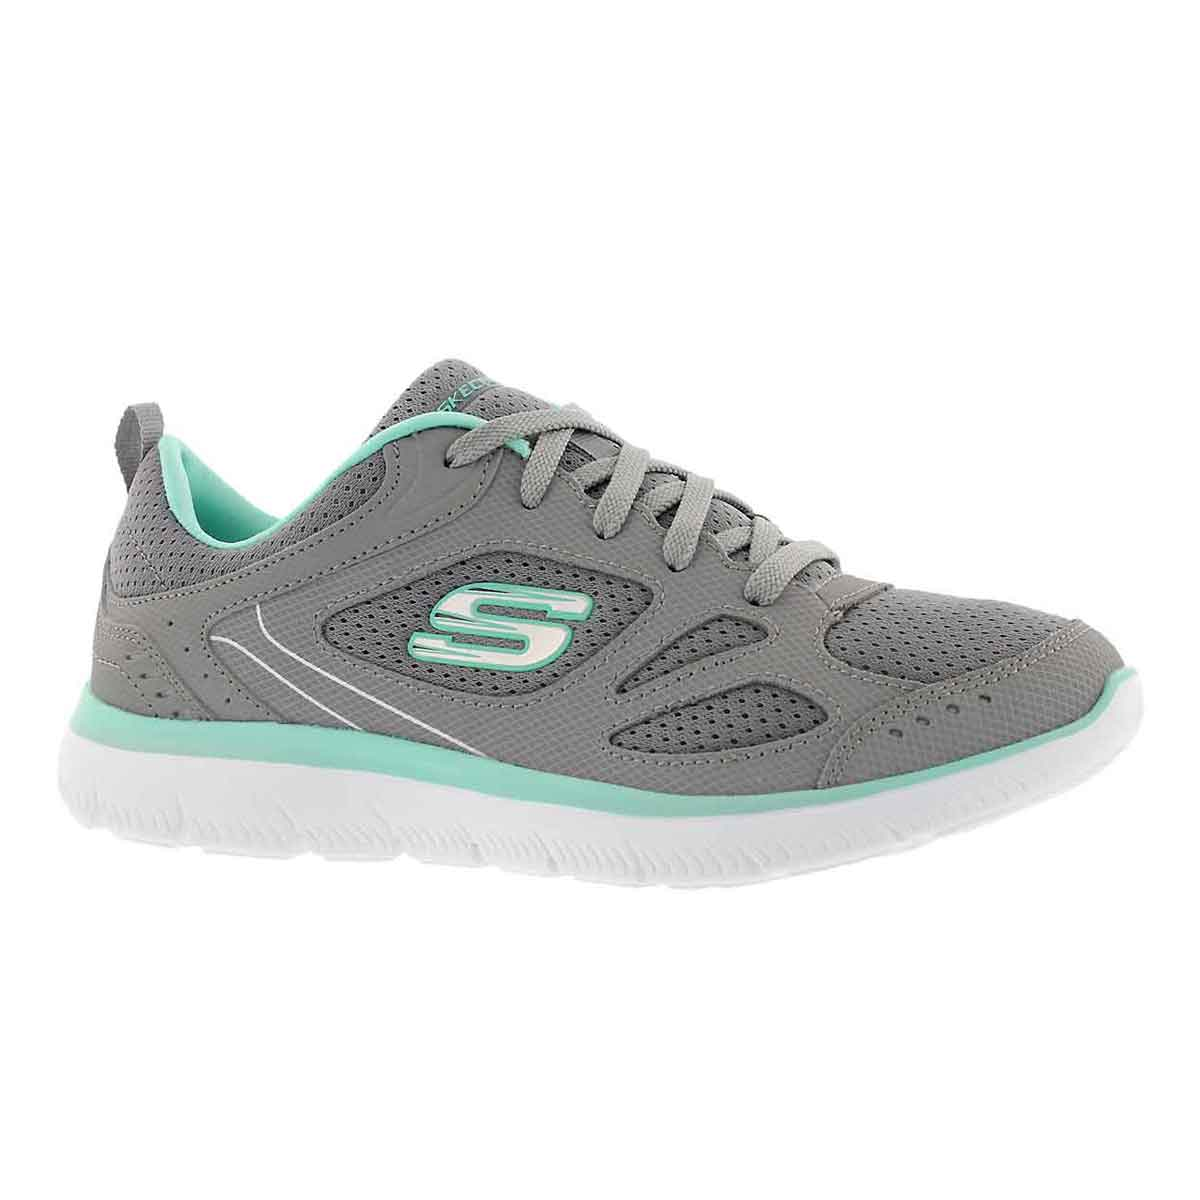 Women's SUMMIT SUITED grey/turquoise sneakers